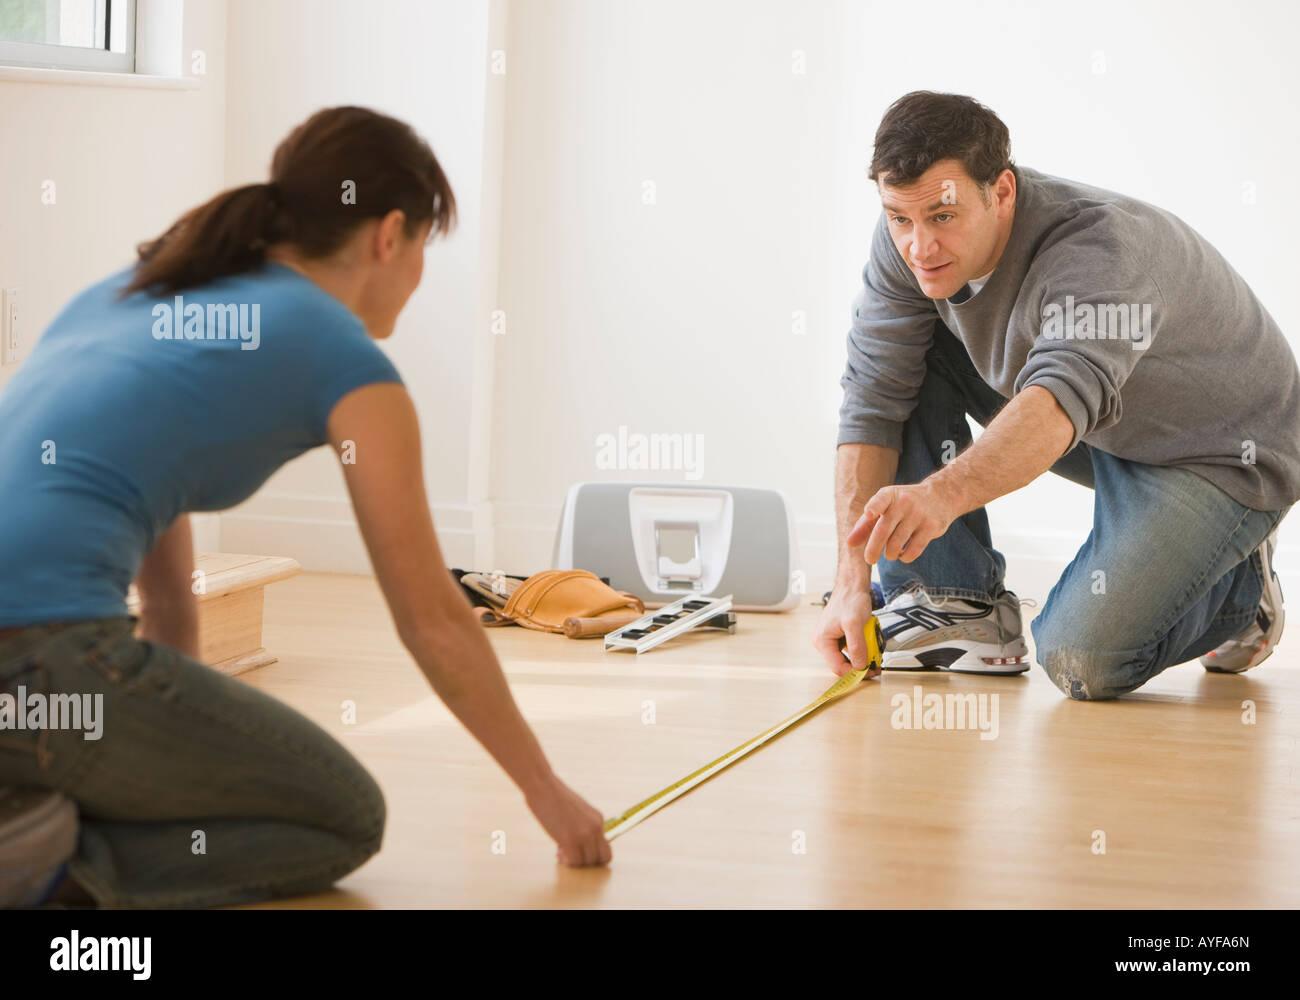 Couple measuring floor with tape measure - Stock Image